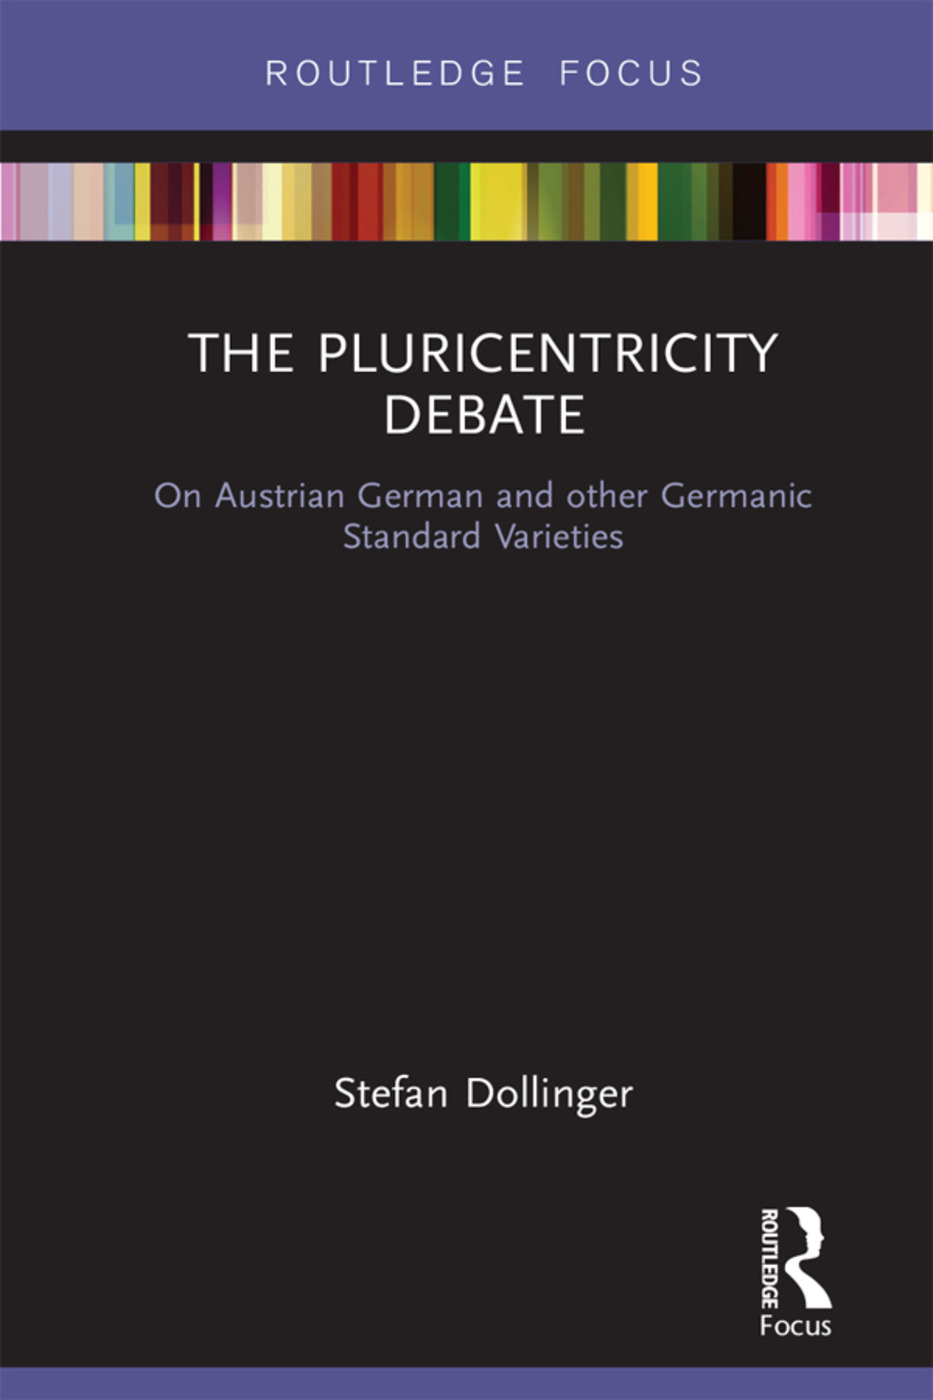 The Pluricentricity Debate: On Austrian German and other Germanic Standard Varieties book cover